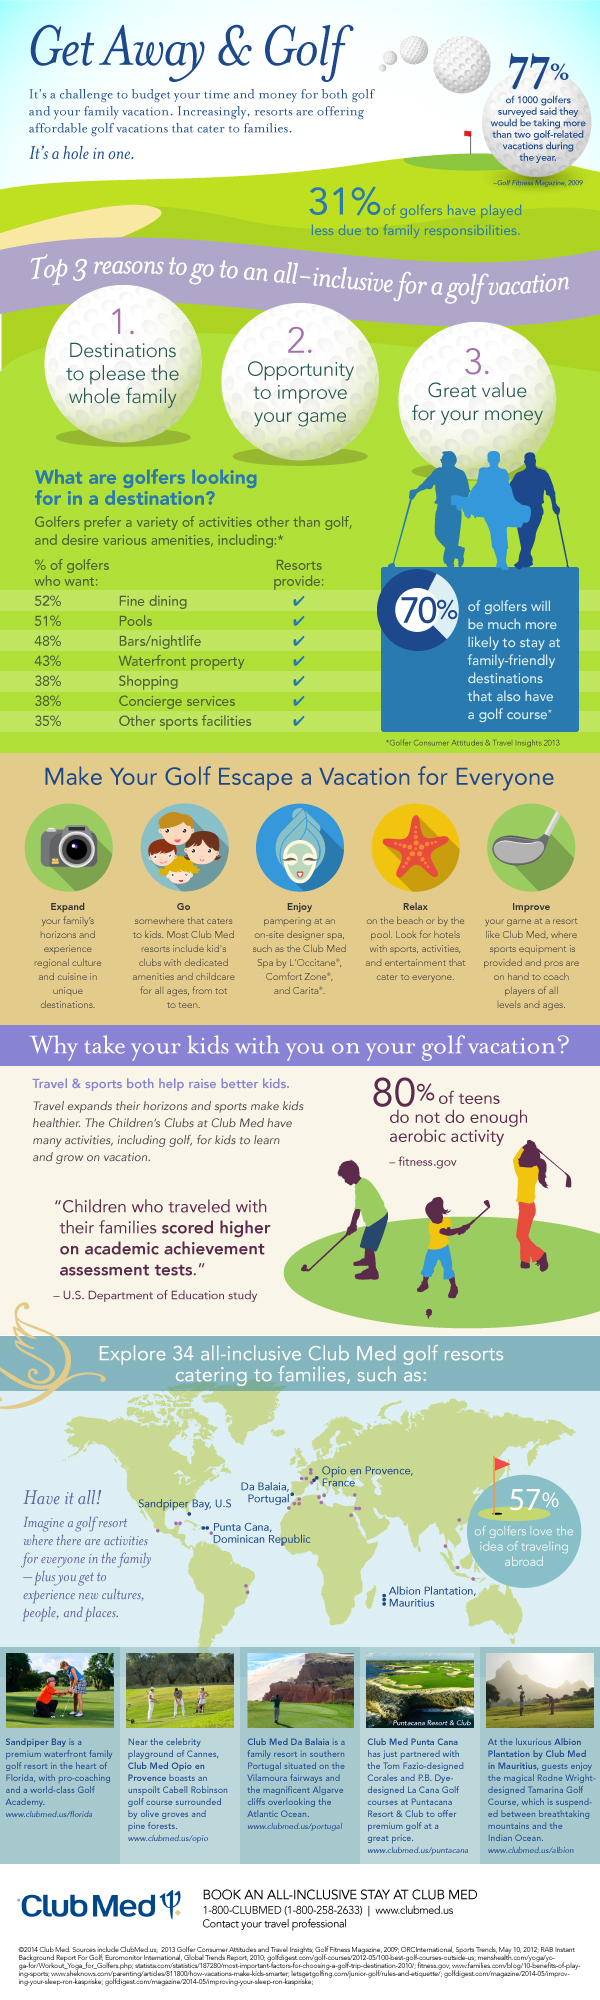 Get away and golf infographic from Club Med